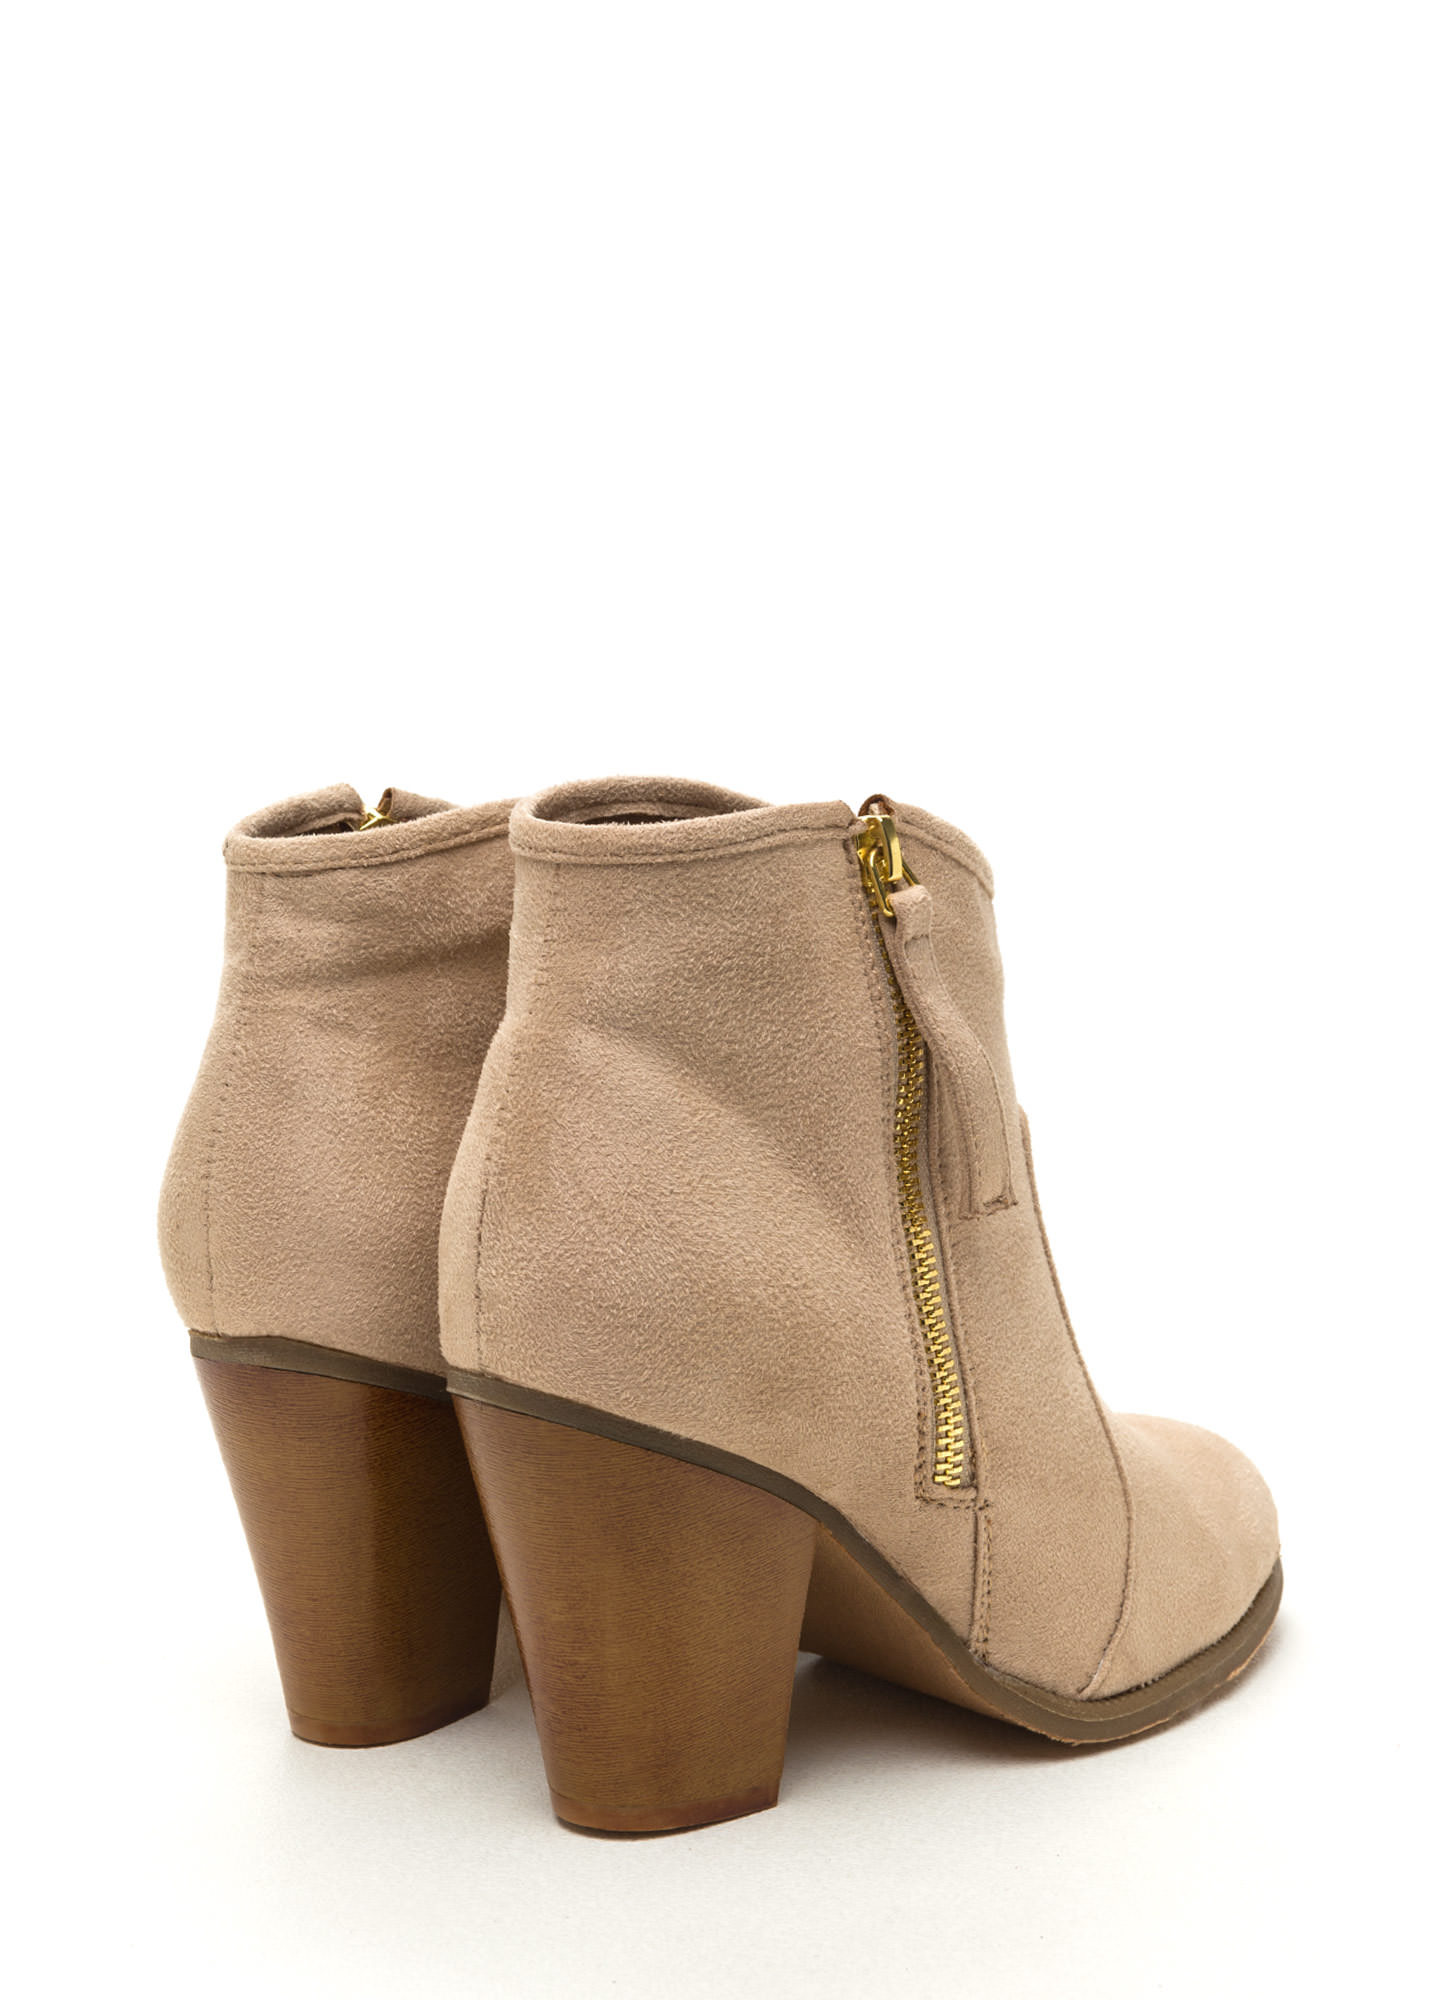 Zipped To The Top Chunky Booties NUDE